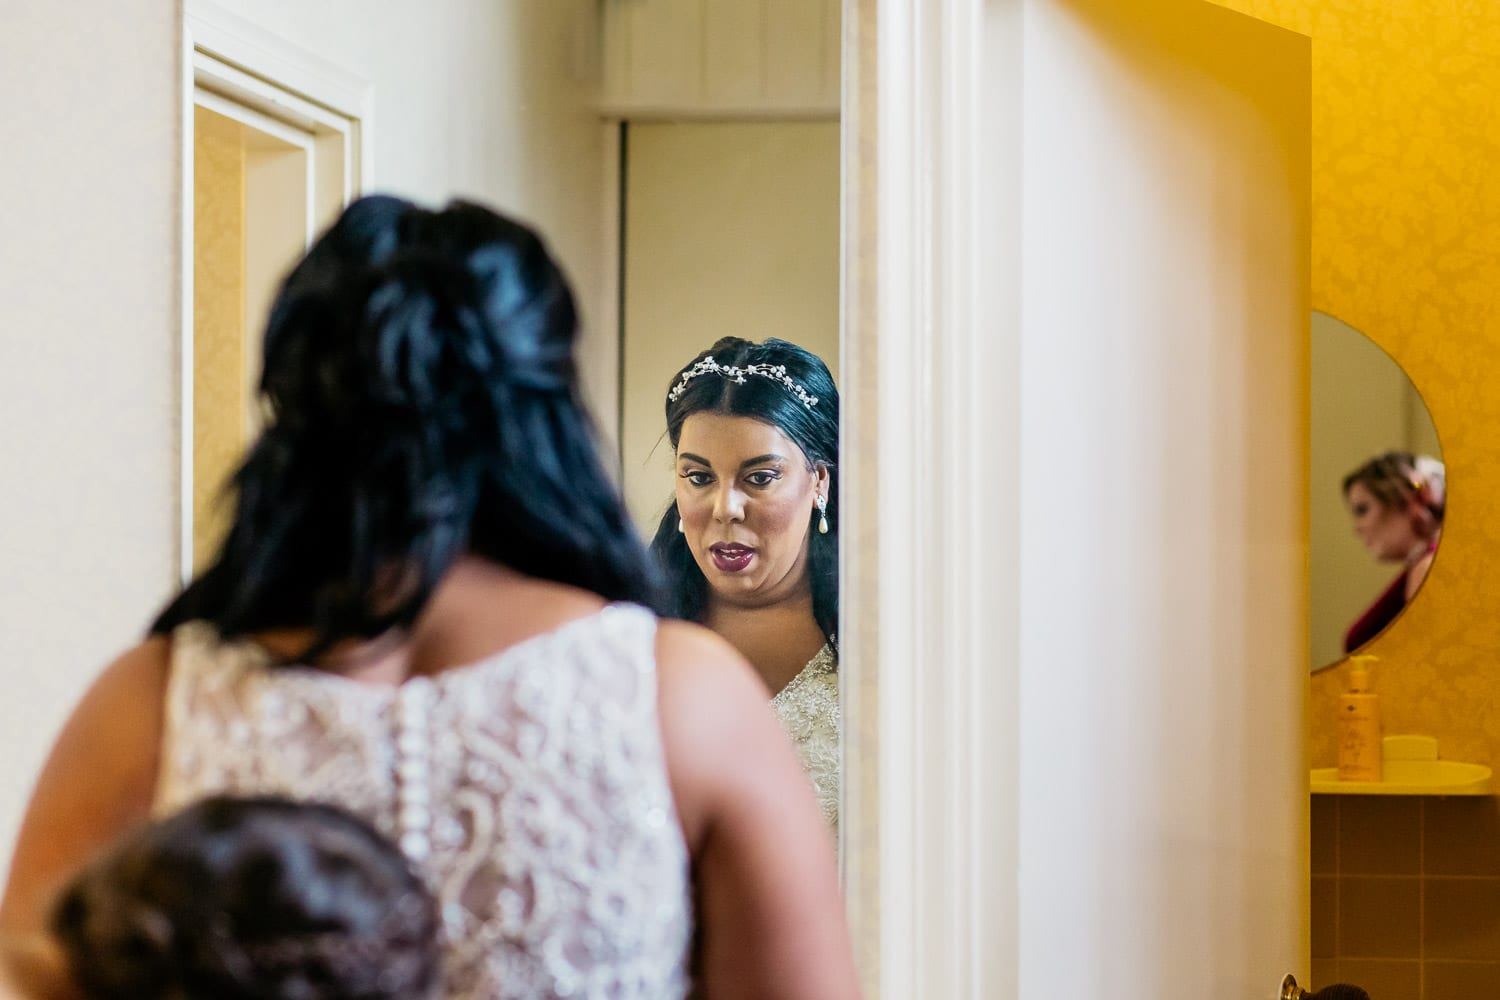 bride looks into a mirror with visible reflection